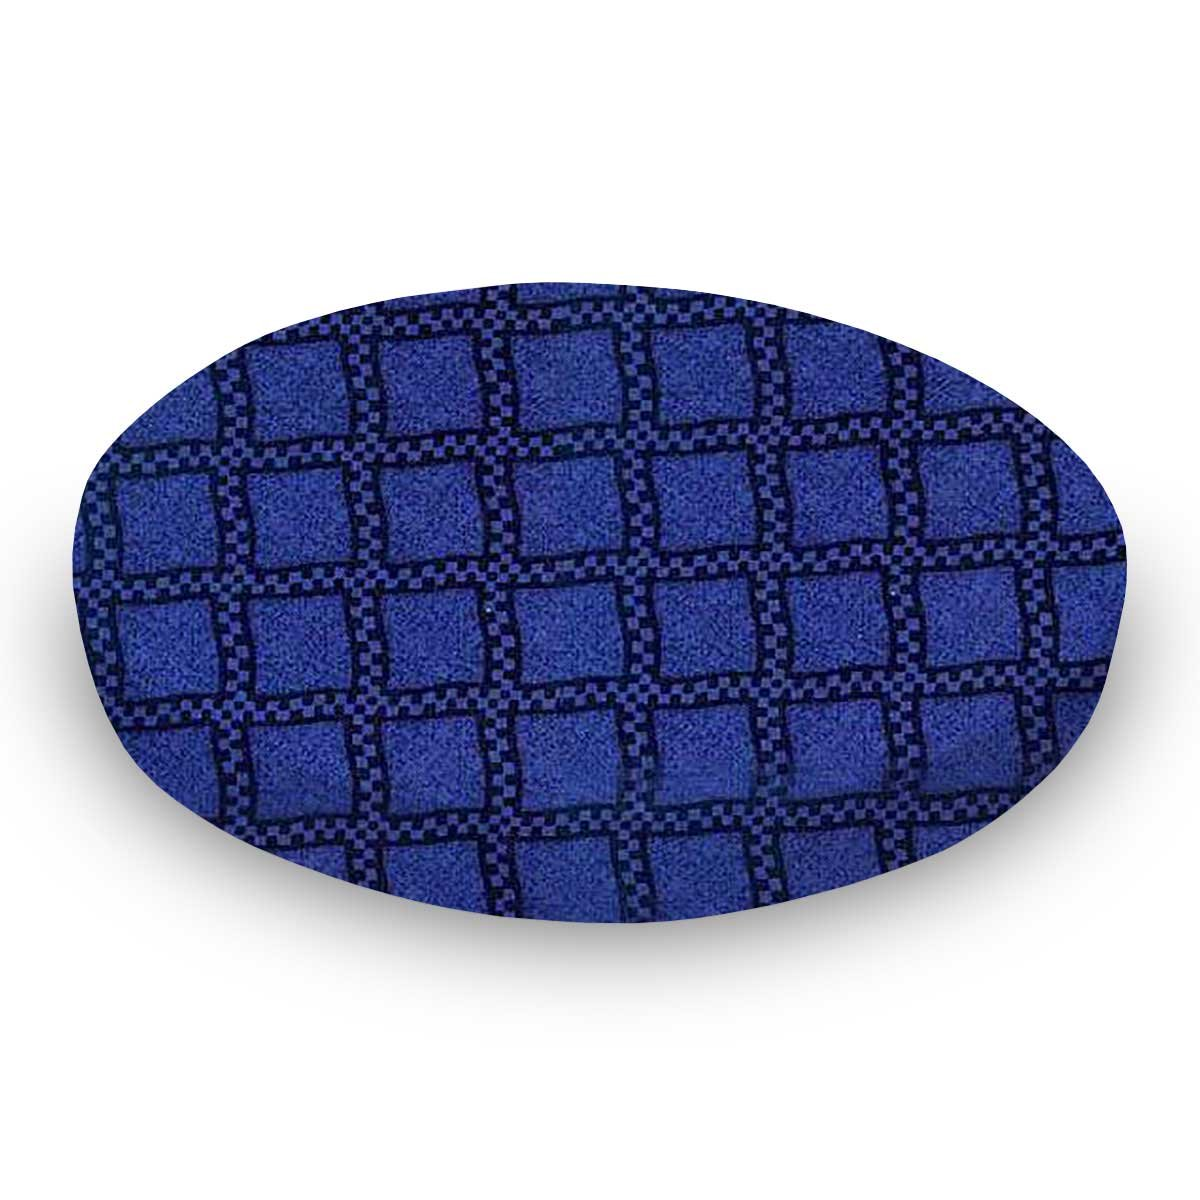 SheetWorld Fitted Oval (Stokke Mini) - Navy & Royal Wavy Check - Made In USA